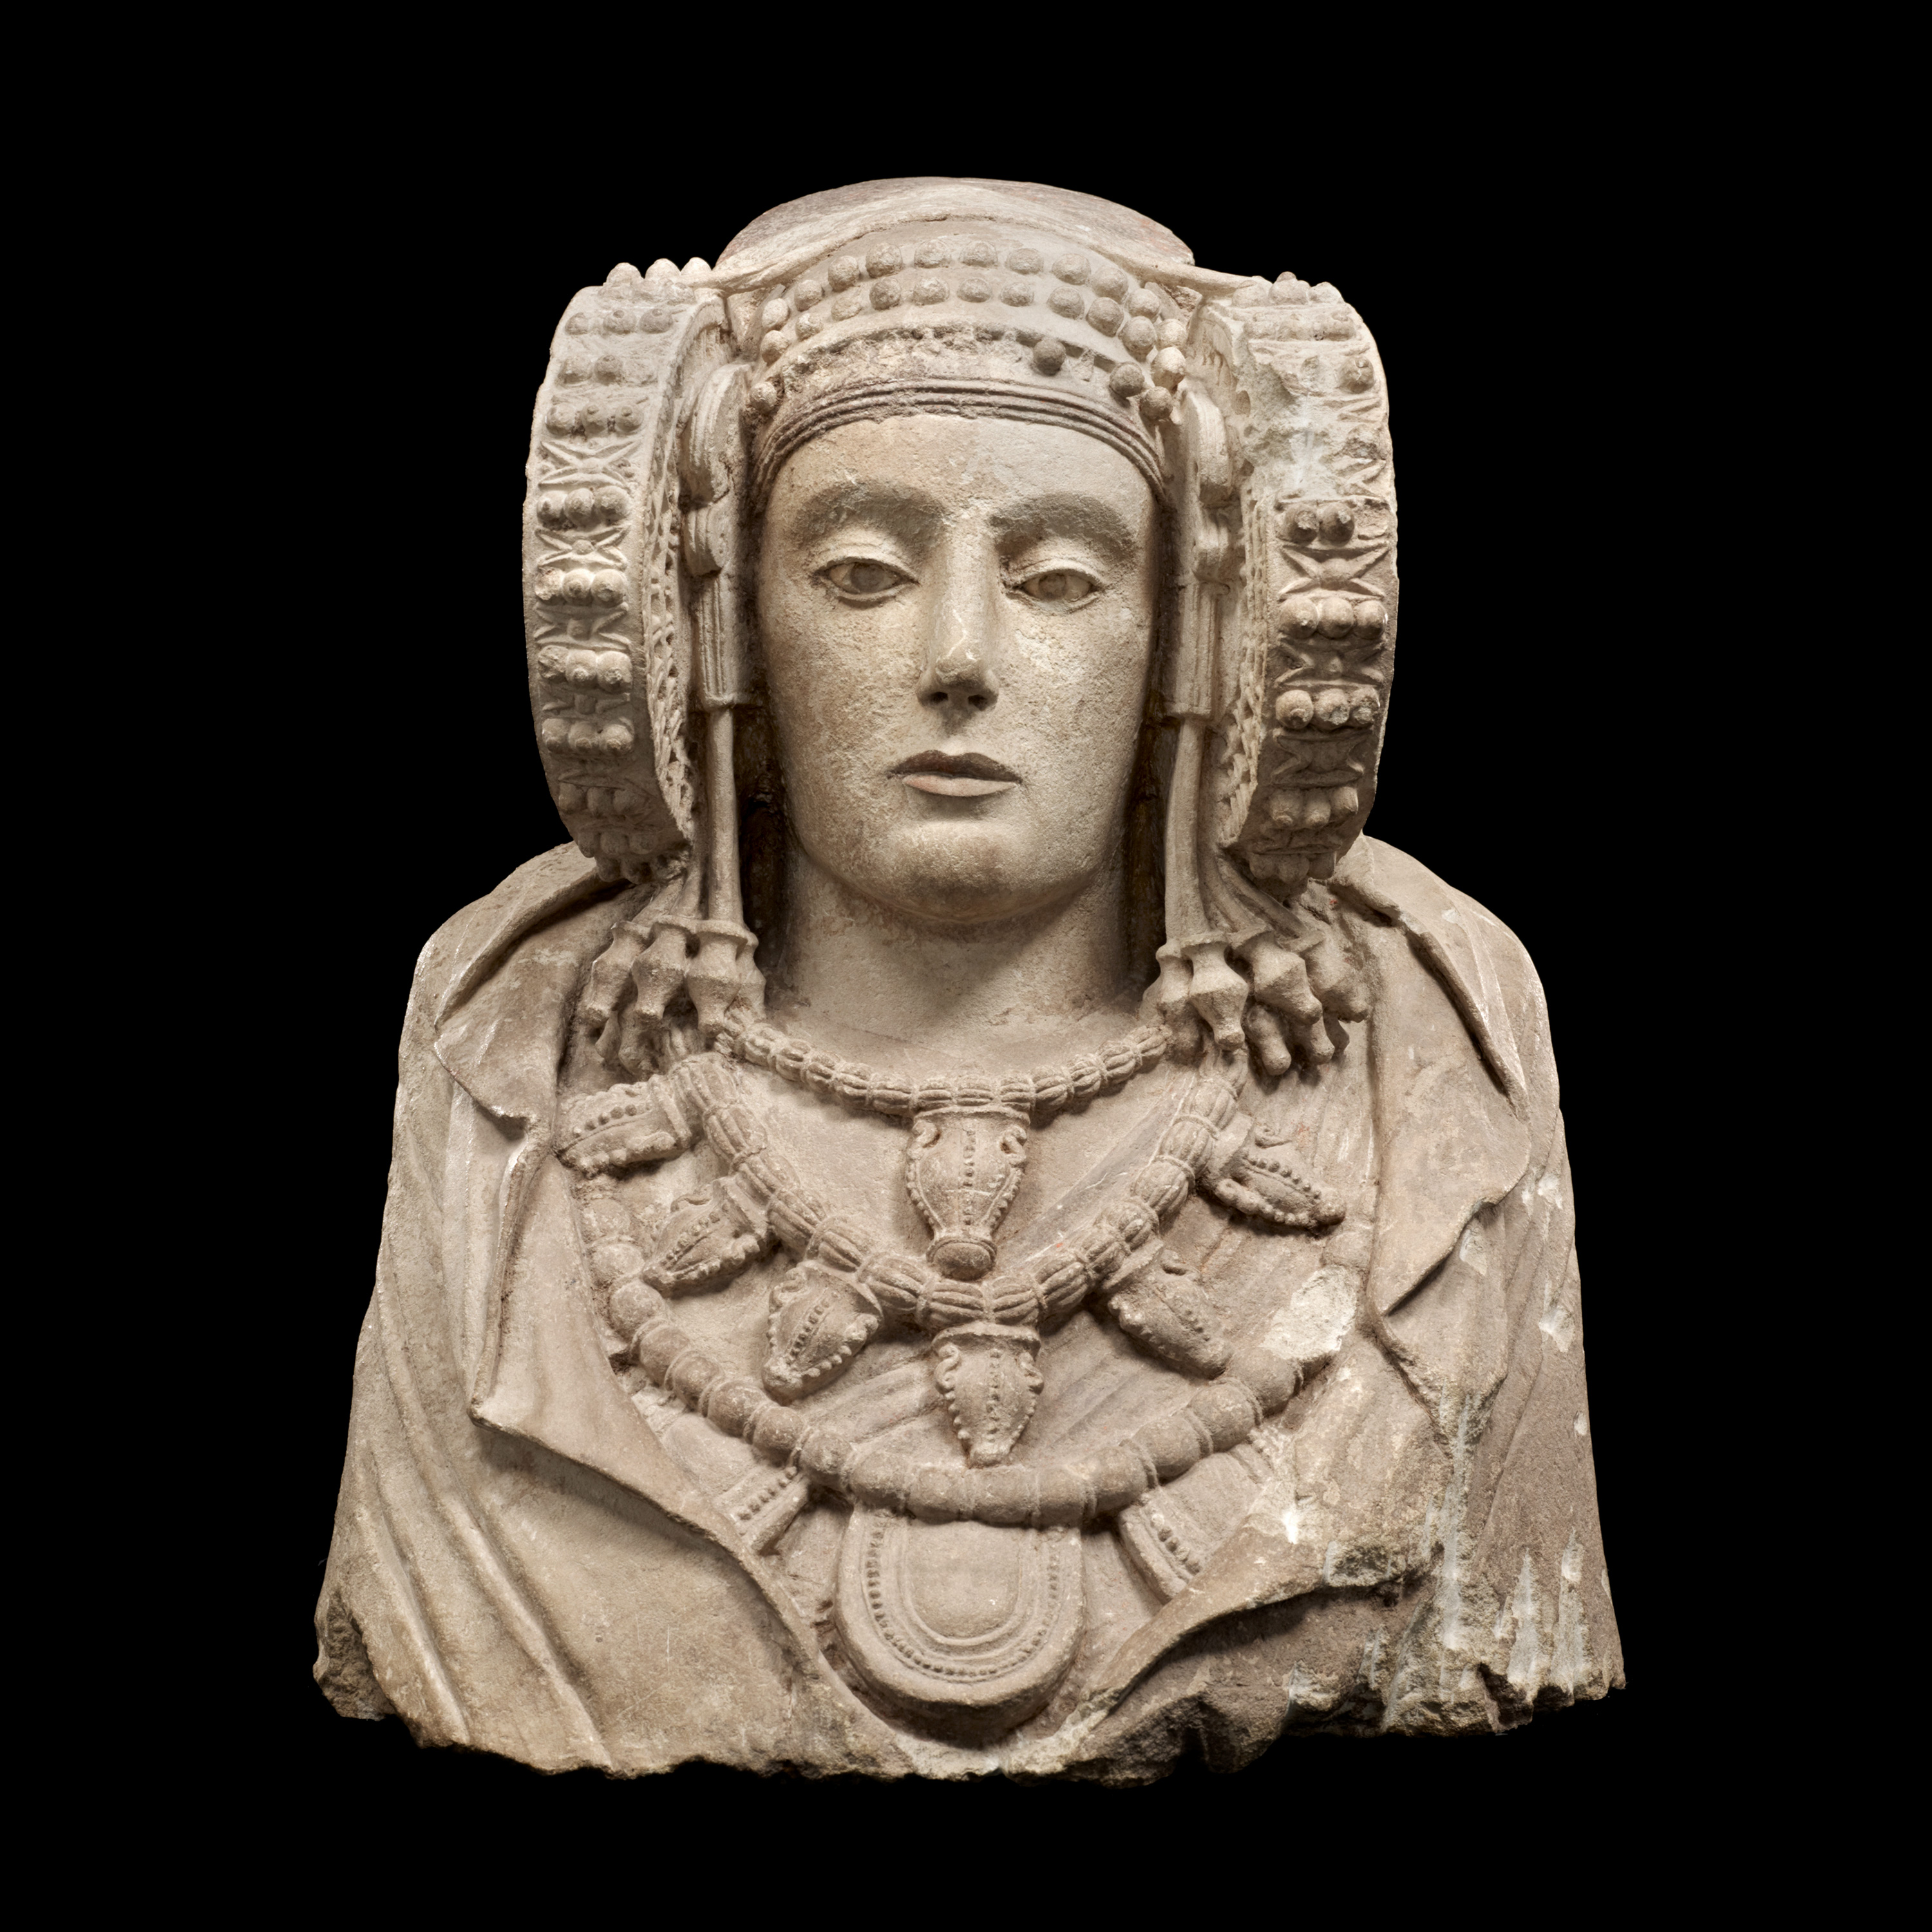 Lady of Elche, 499 BCE — The Iberians